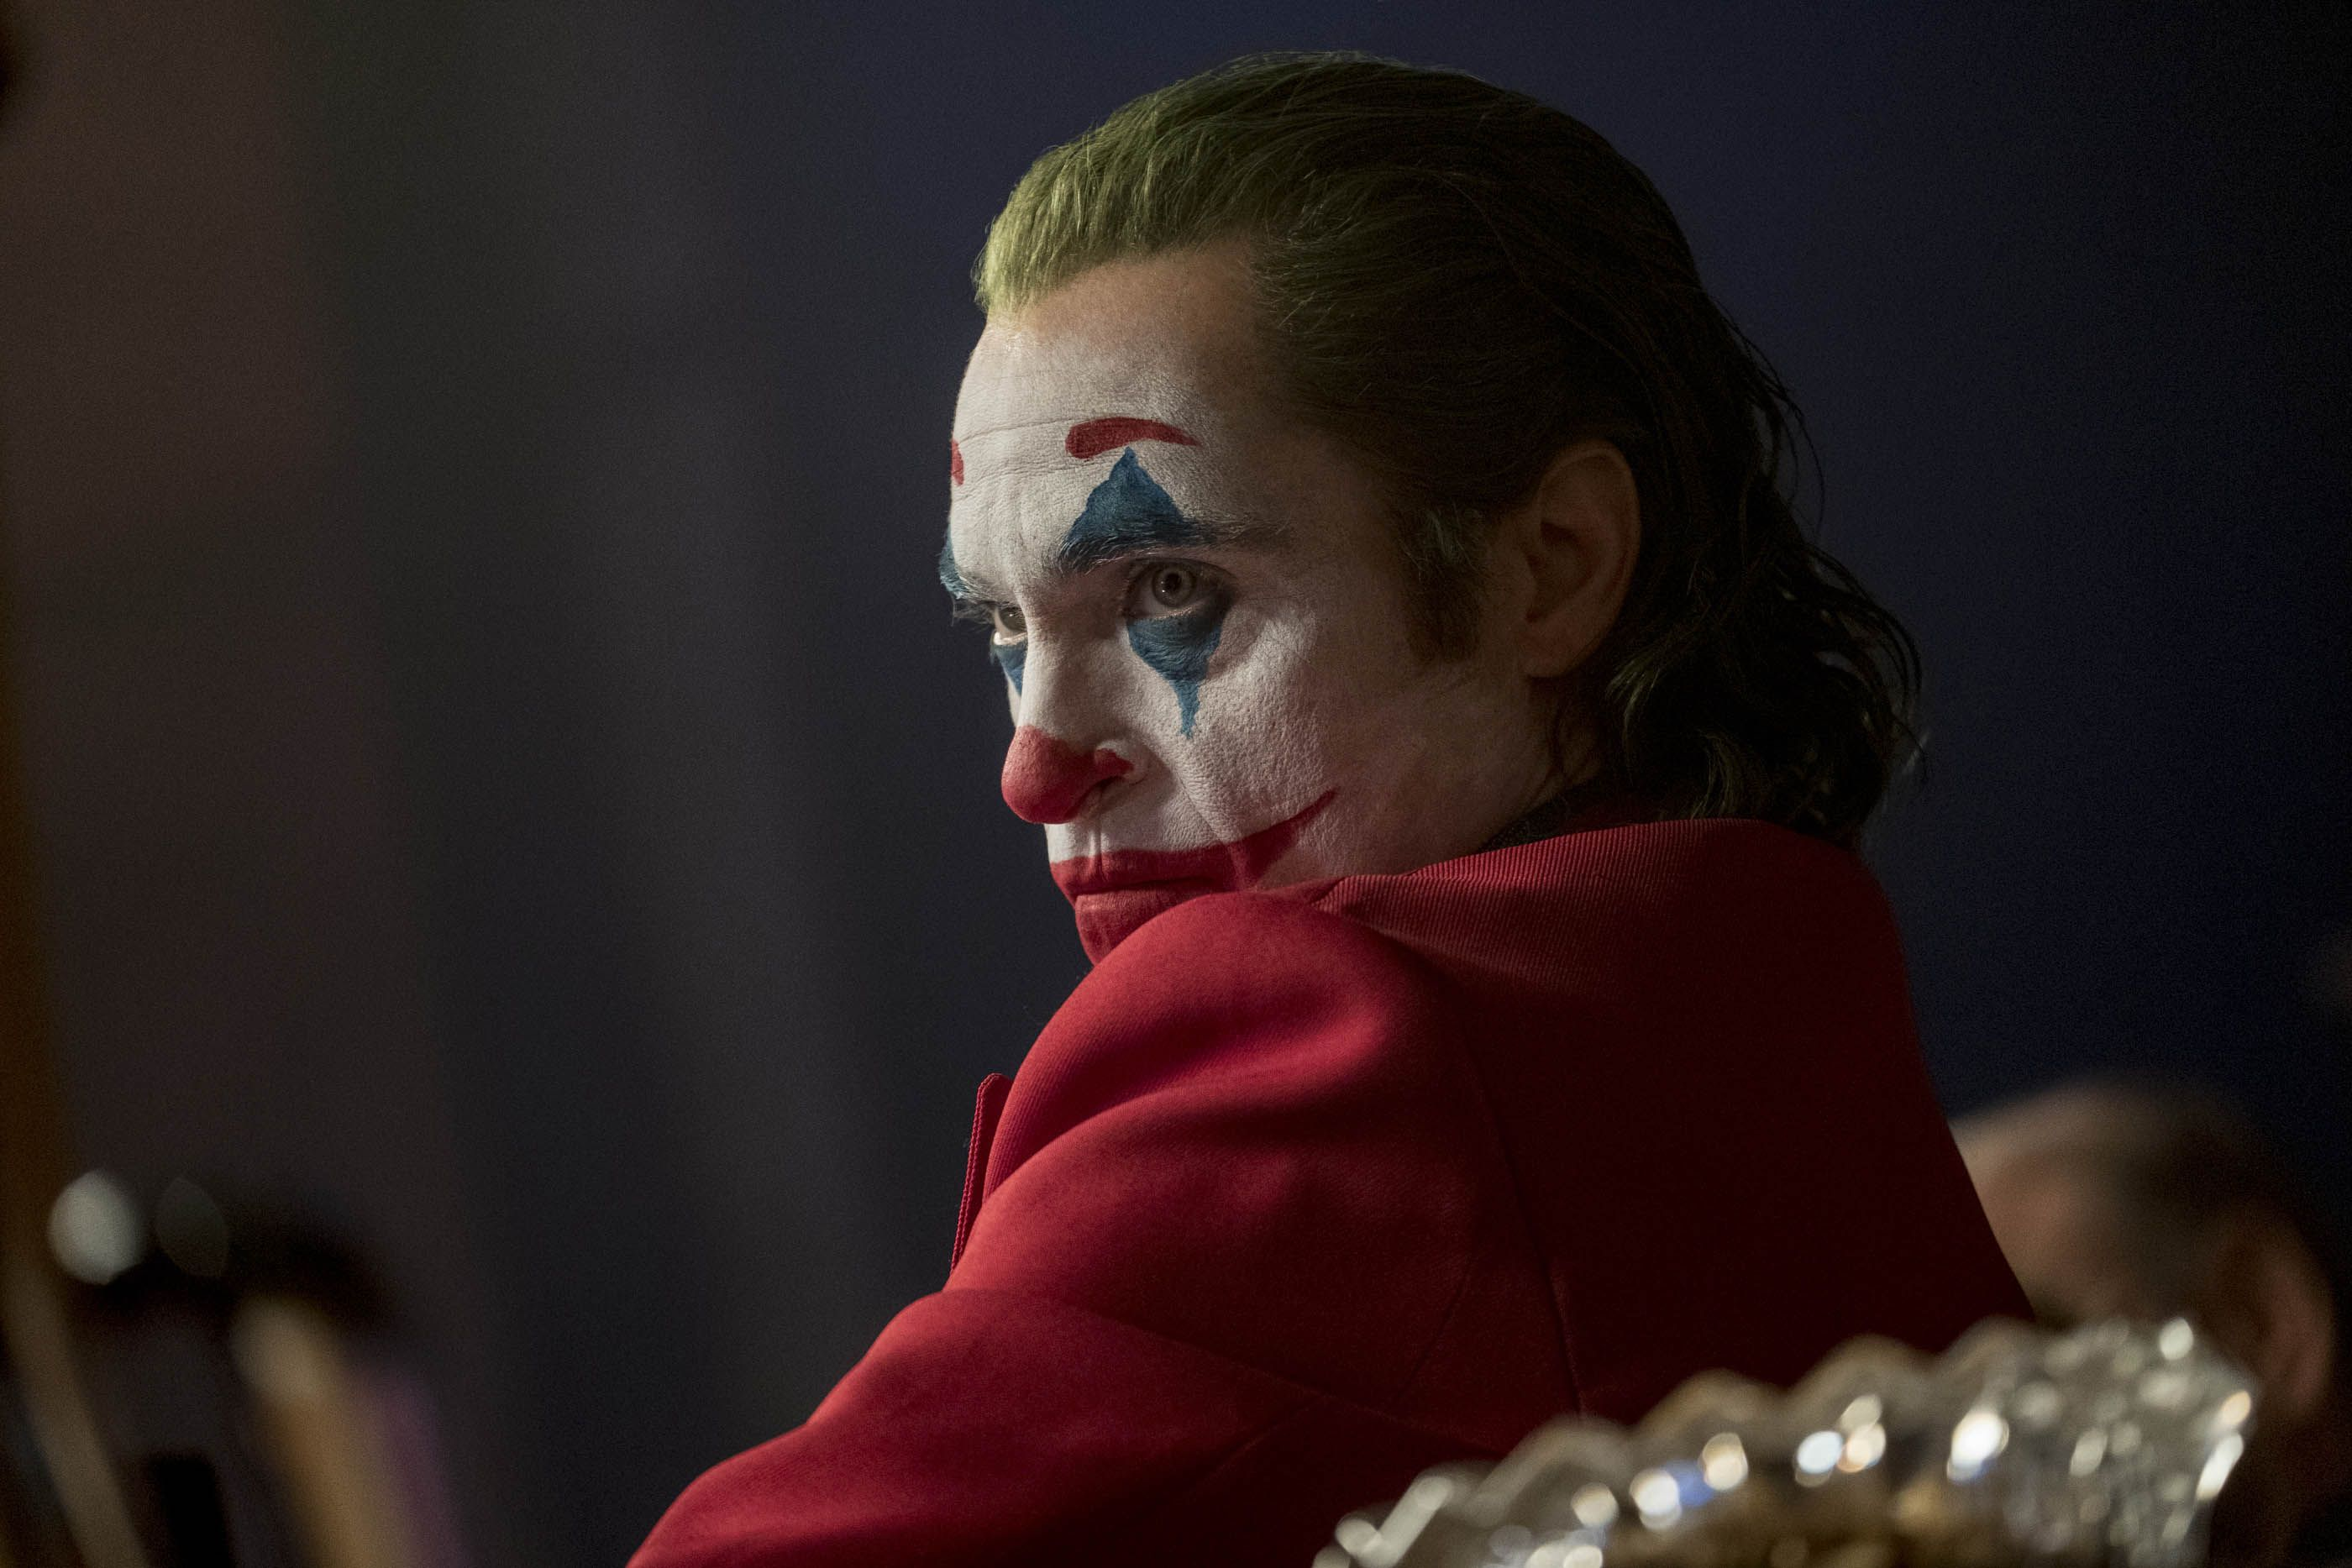 The Joker's Laugh Is Based on a Real Condition Called the Pseudobulbar Affect